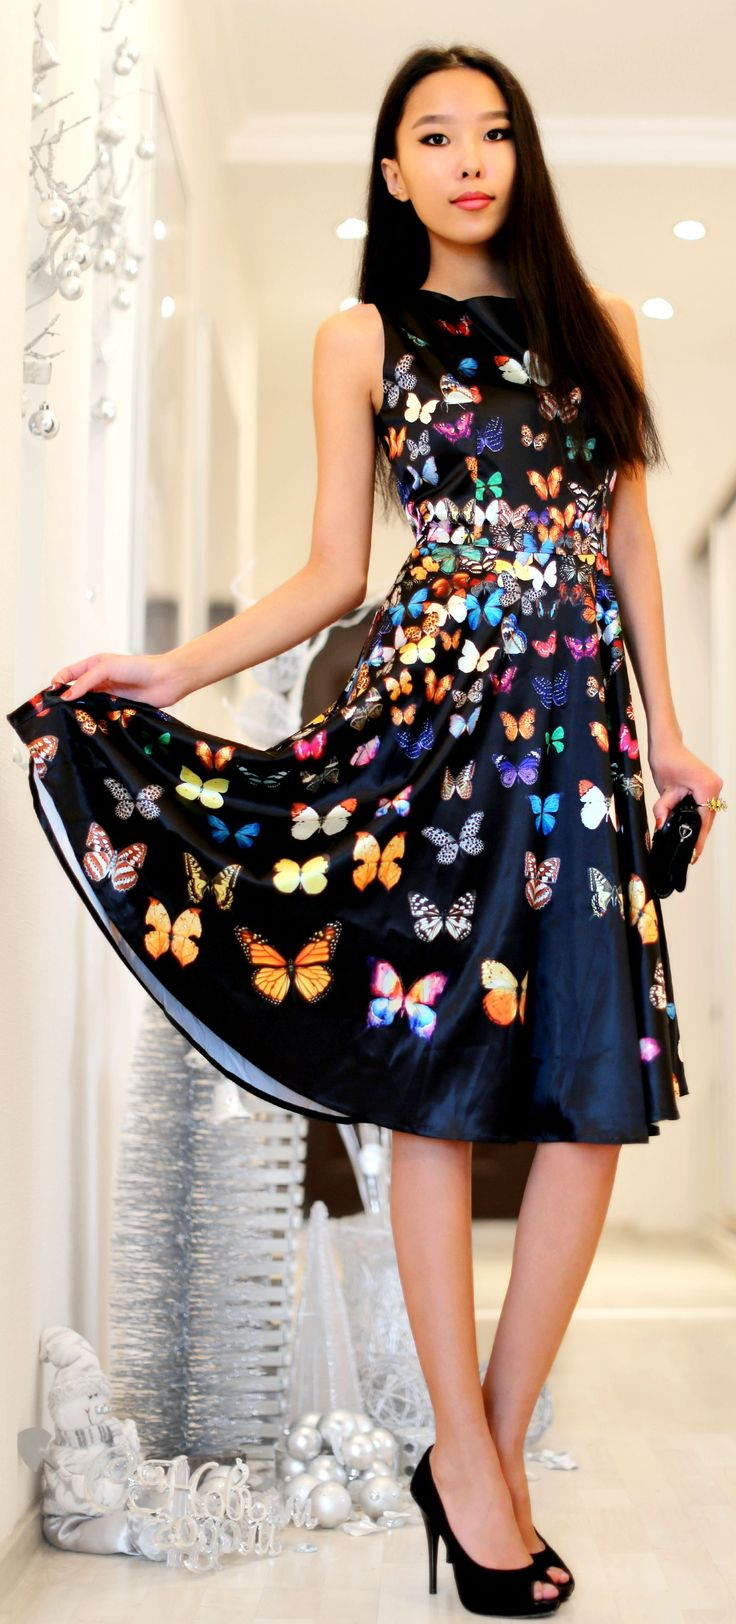 Find great deals on eBay for black butterfly dress. Shop with confidence.